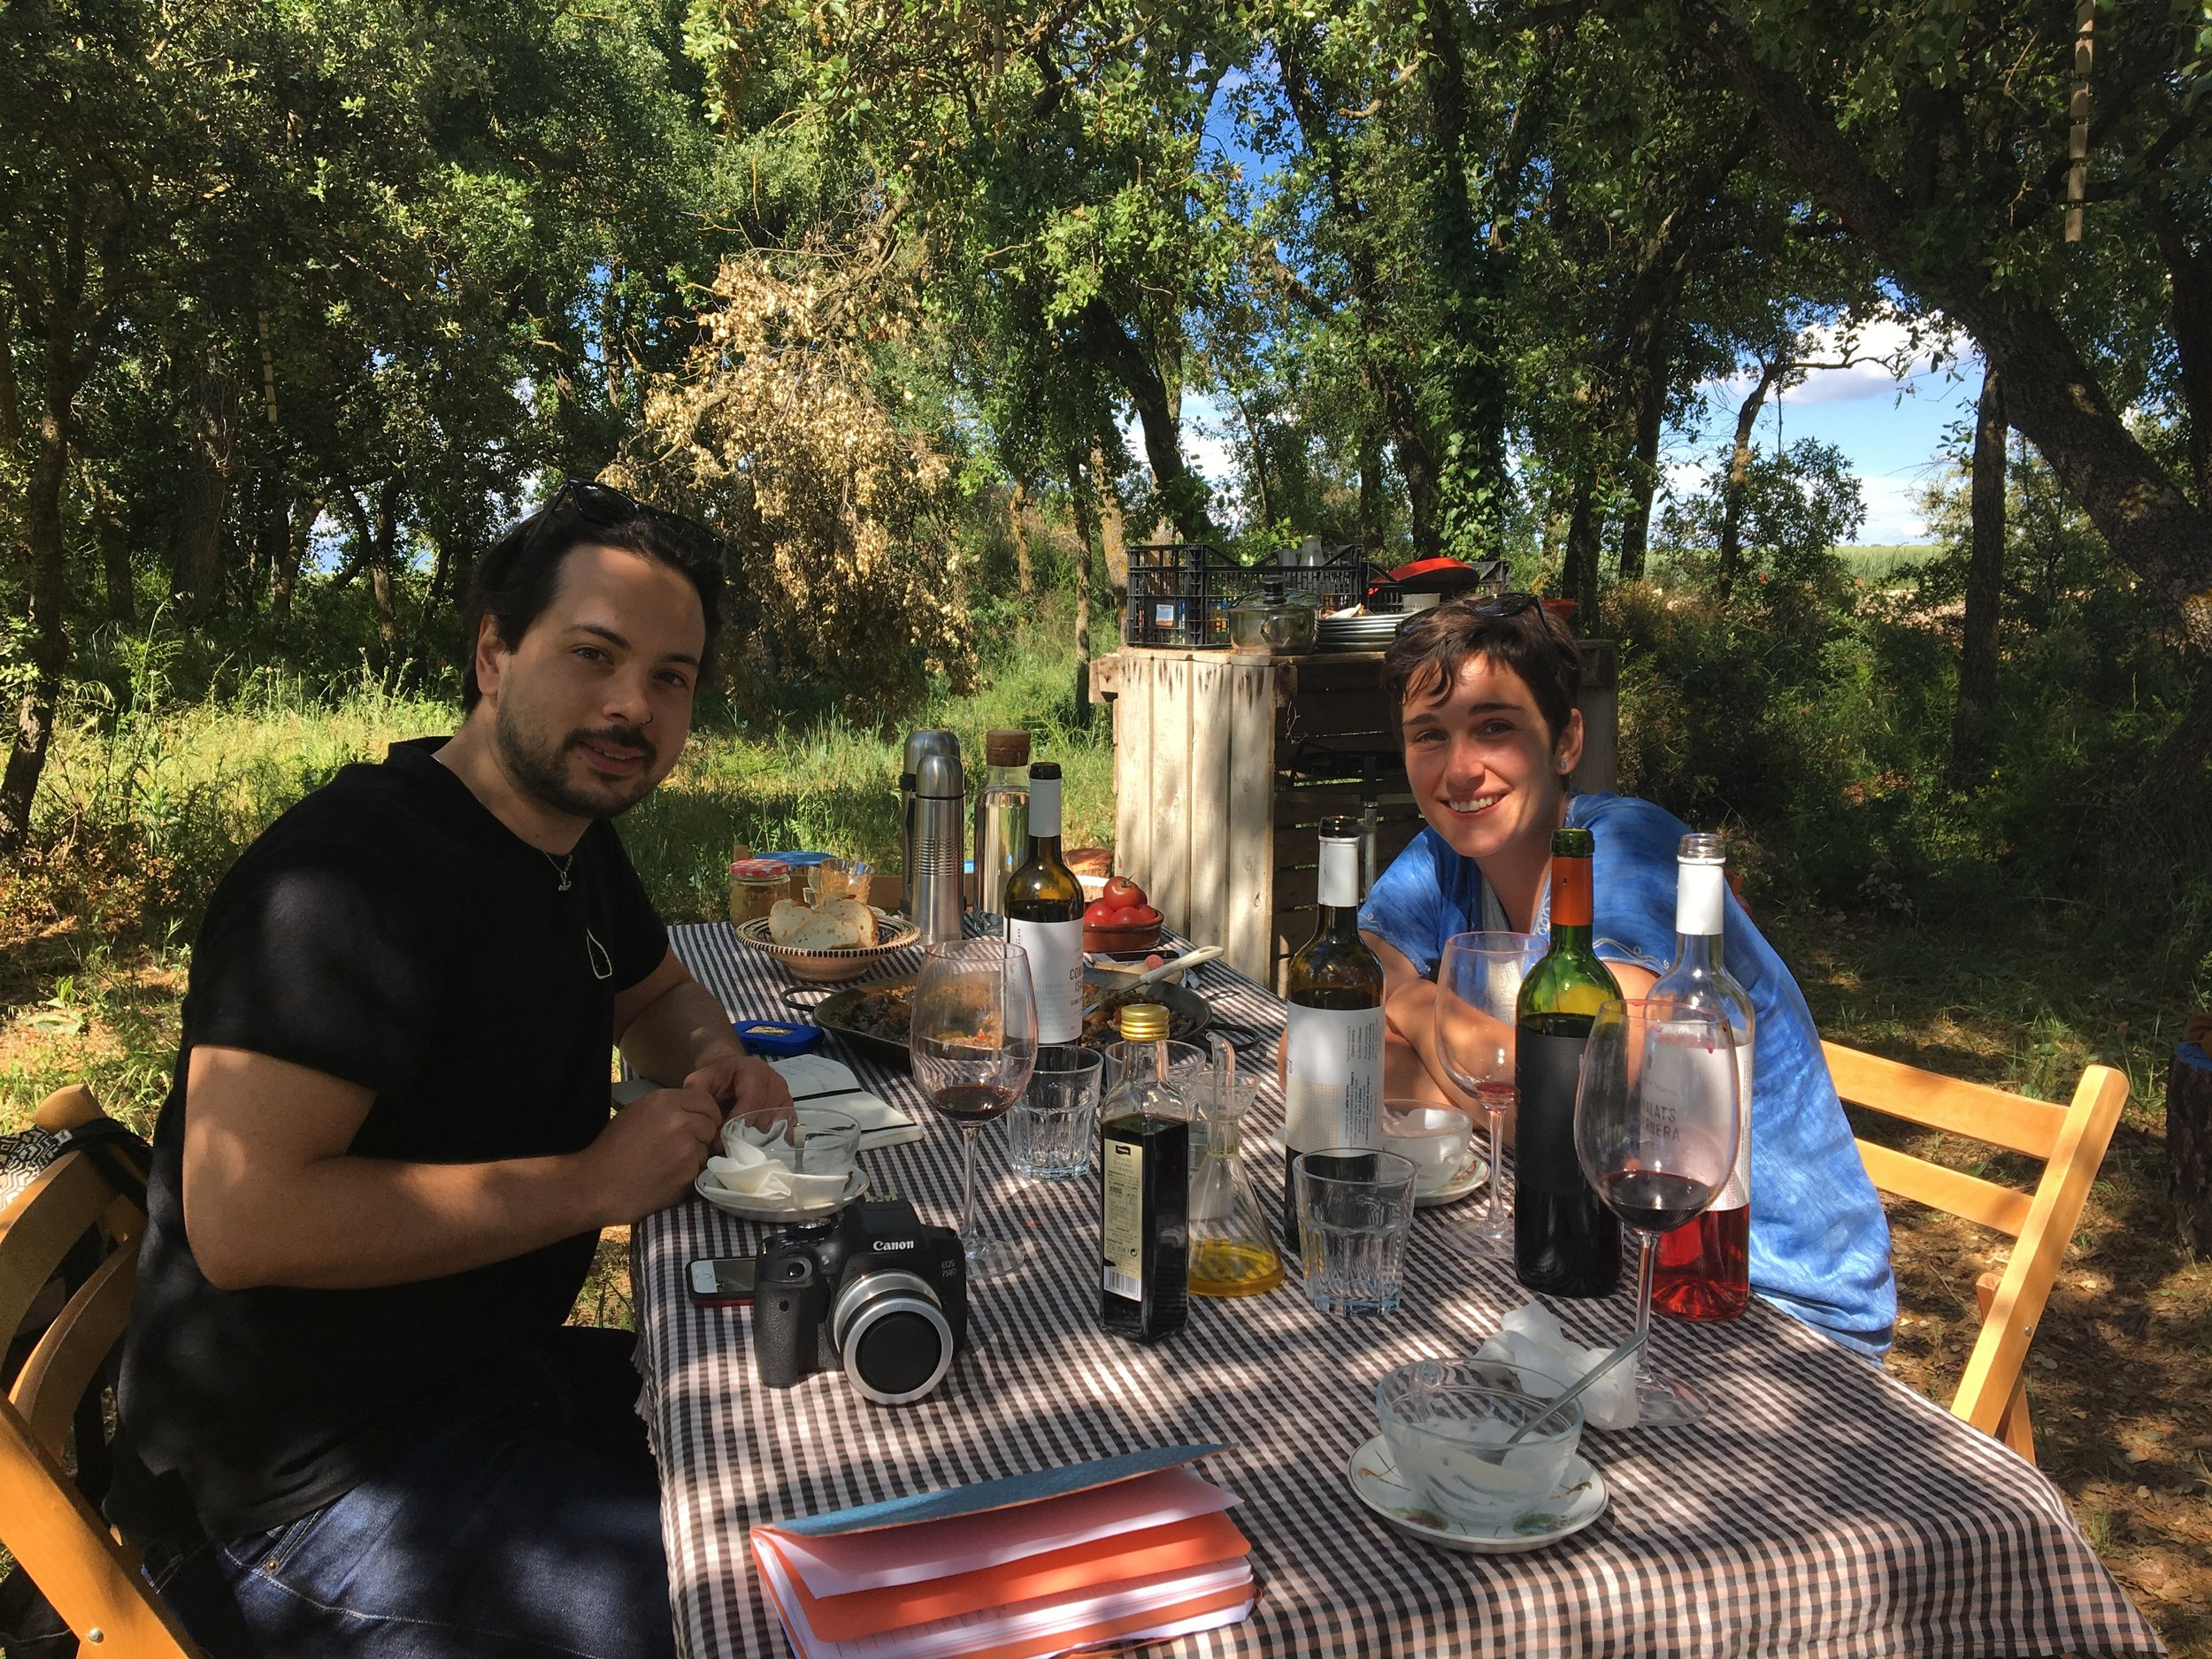 Surprise lunch and tasting in a shady grove.